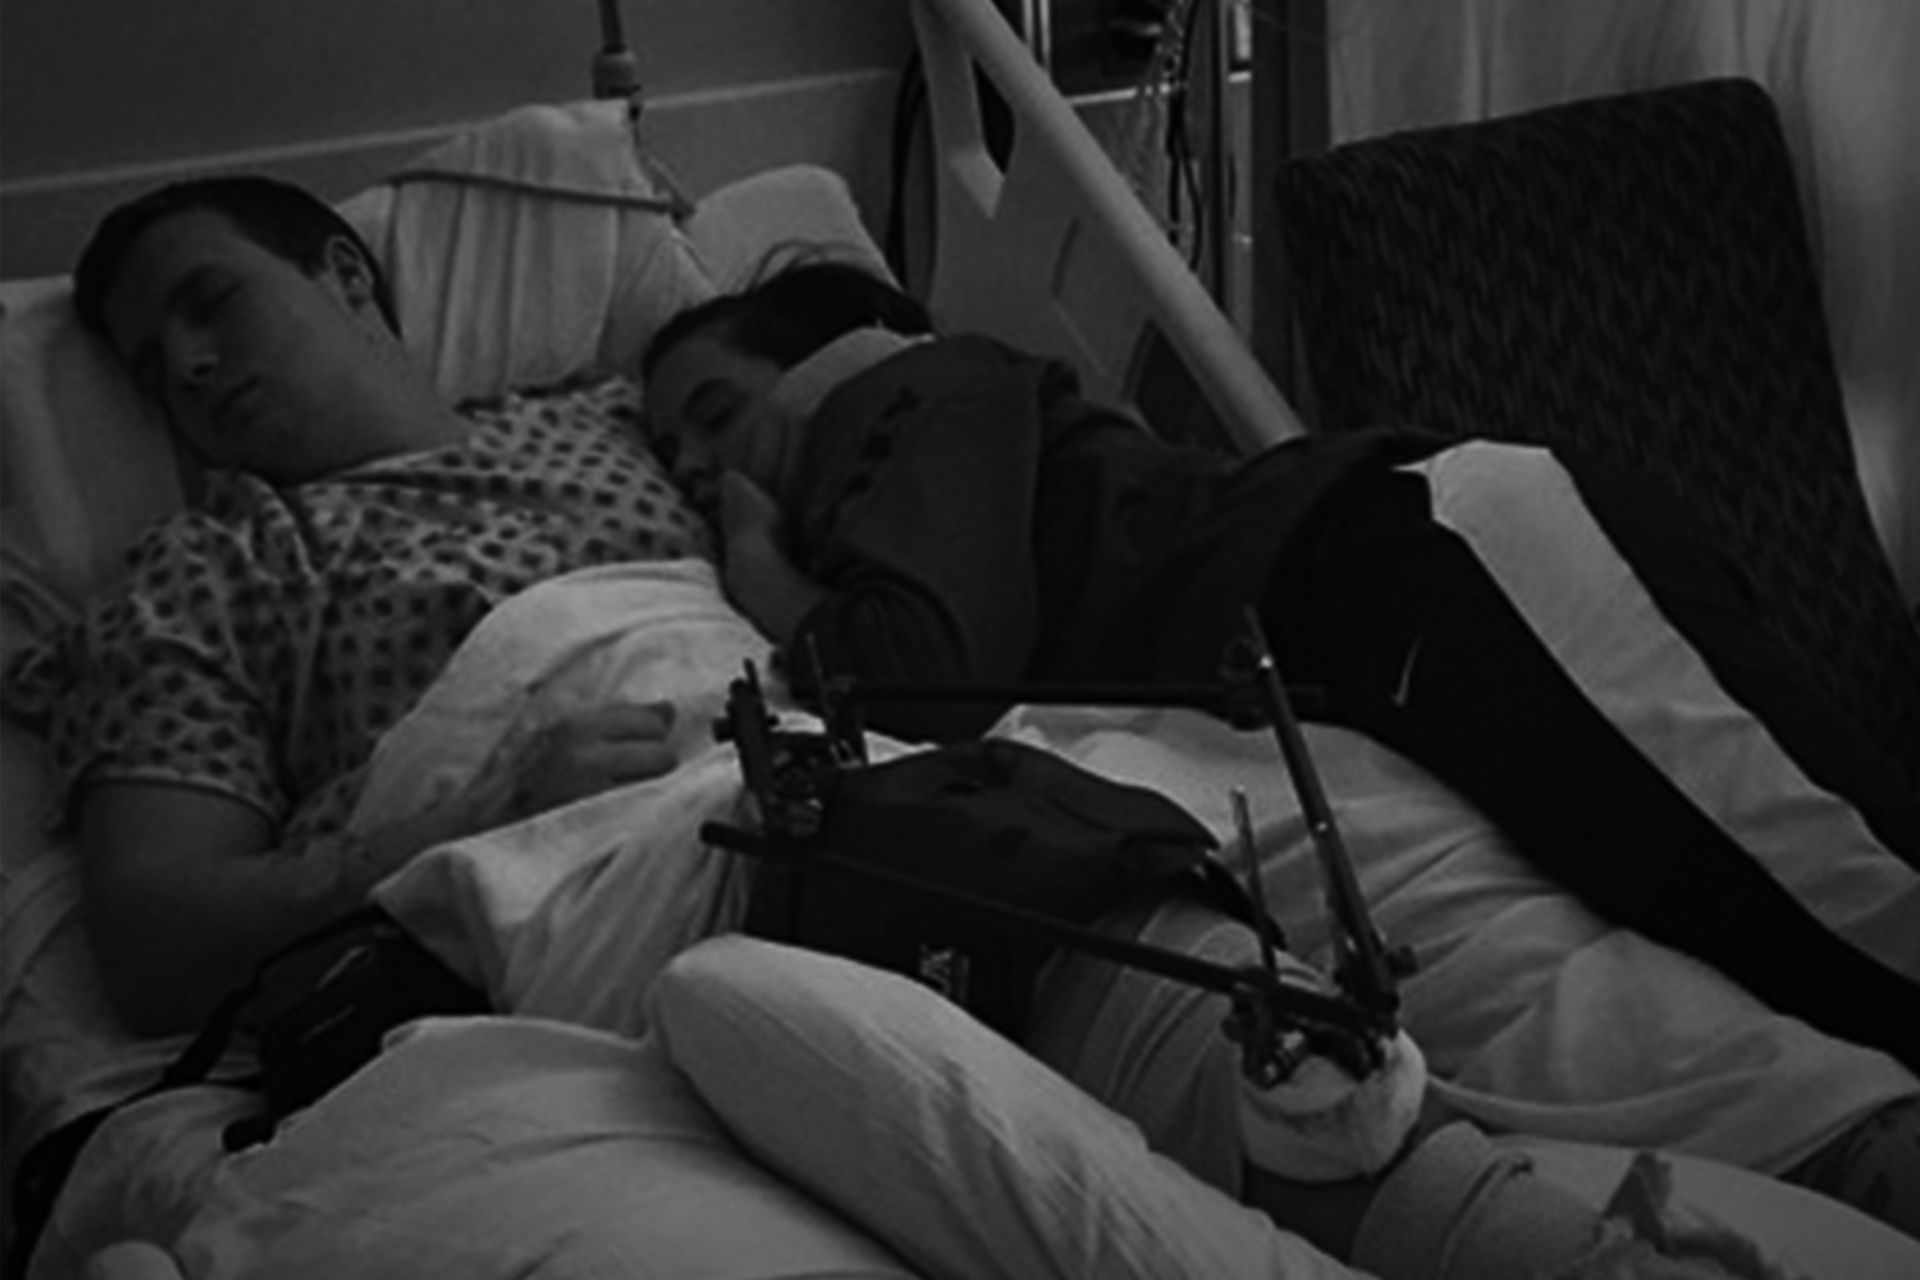 Black and white photo of Caleb and Amelia sleeping in his hospital bed. Caleb's knee has an external fixator attached to stabilize it.